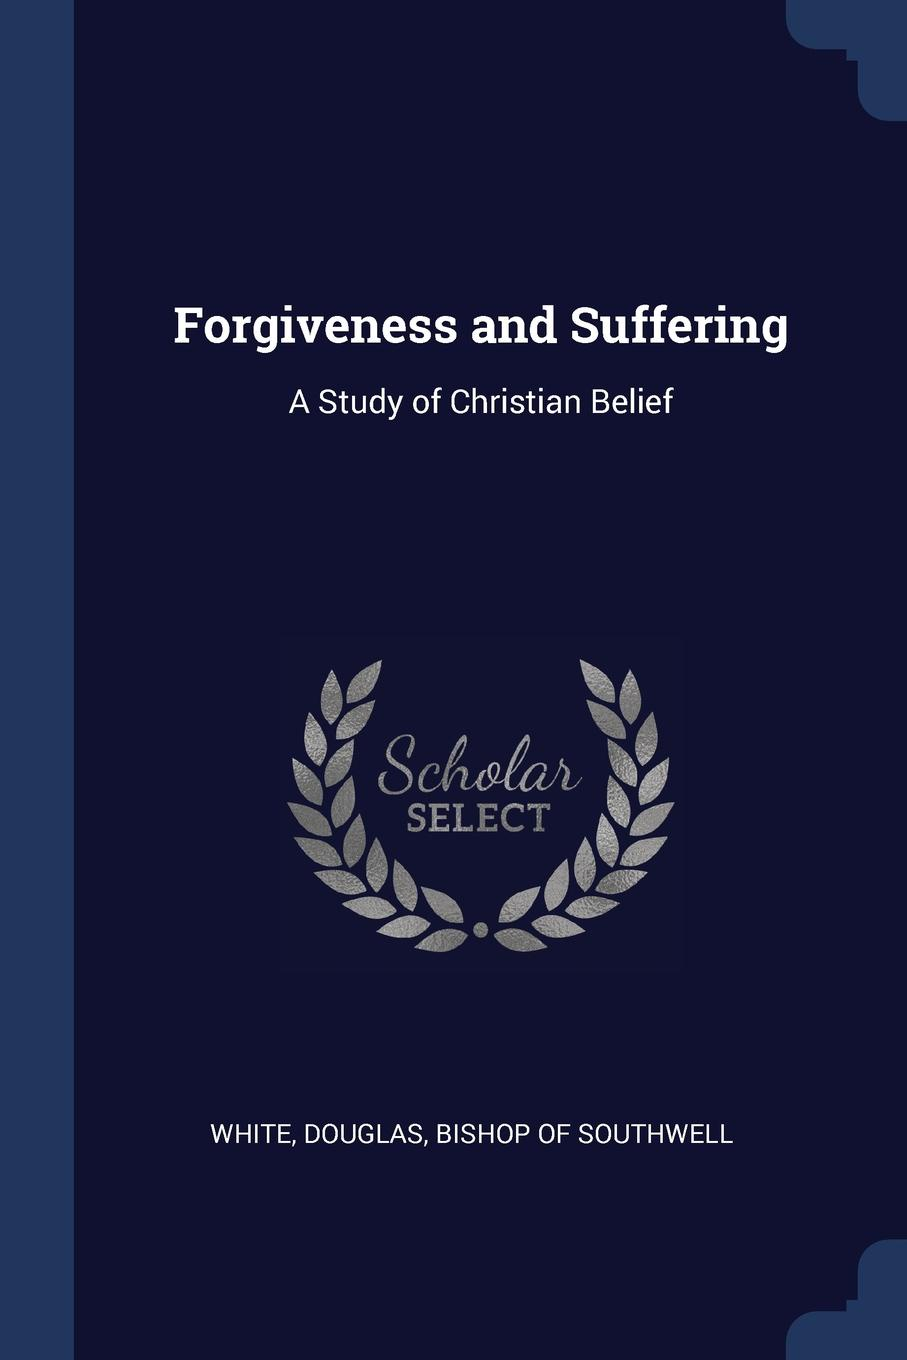 Forgiveness and Suffering. A Study of Christian Belief.